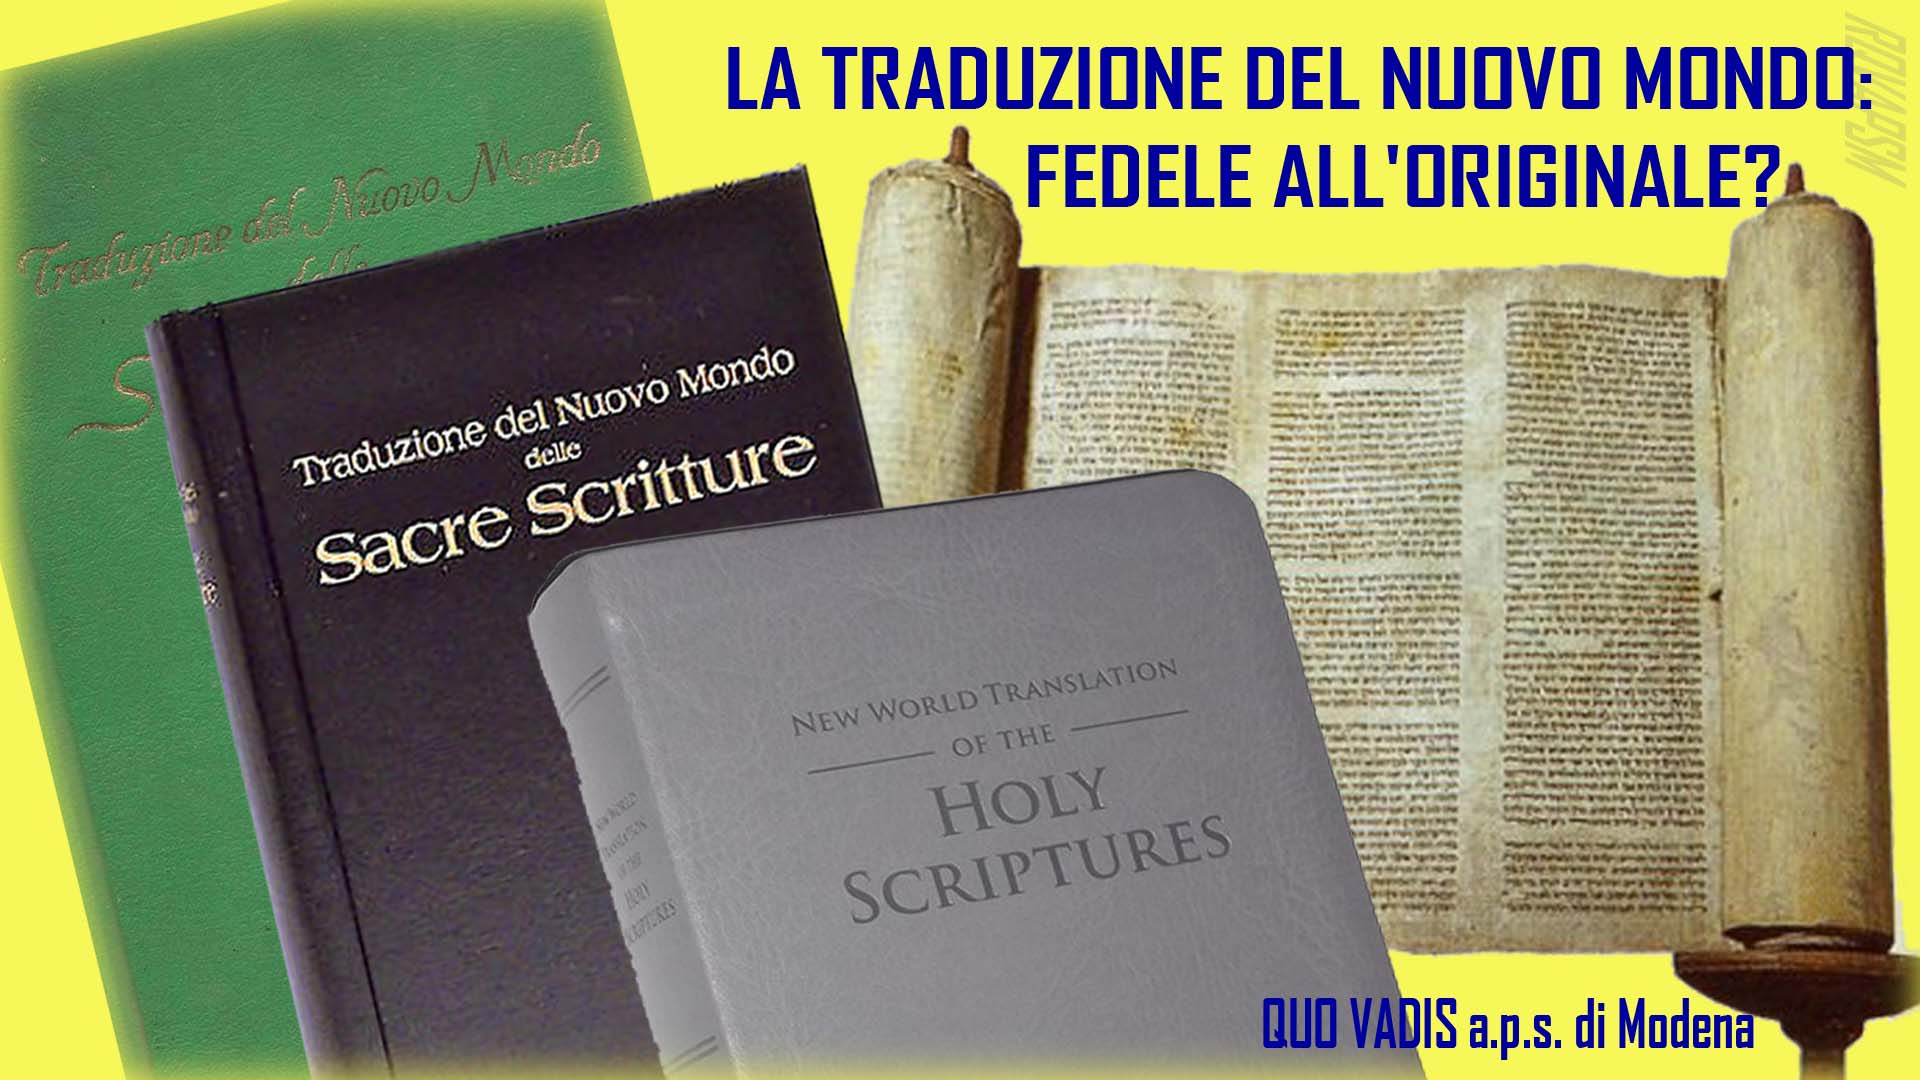 tnm fedele all'originale